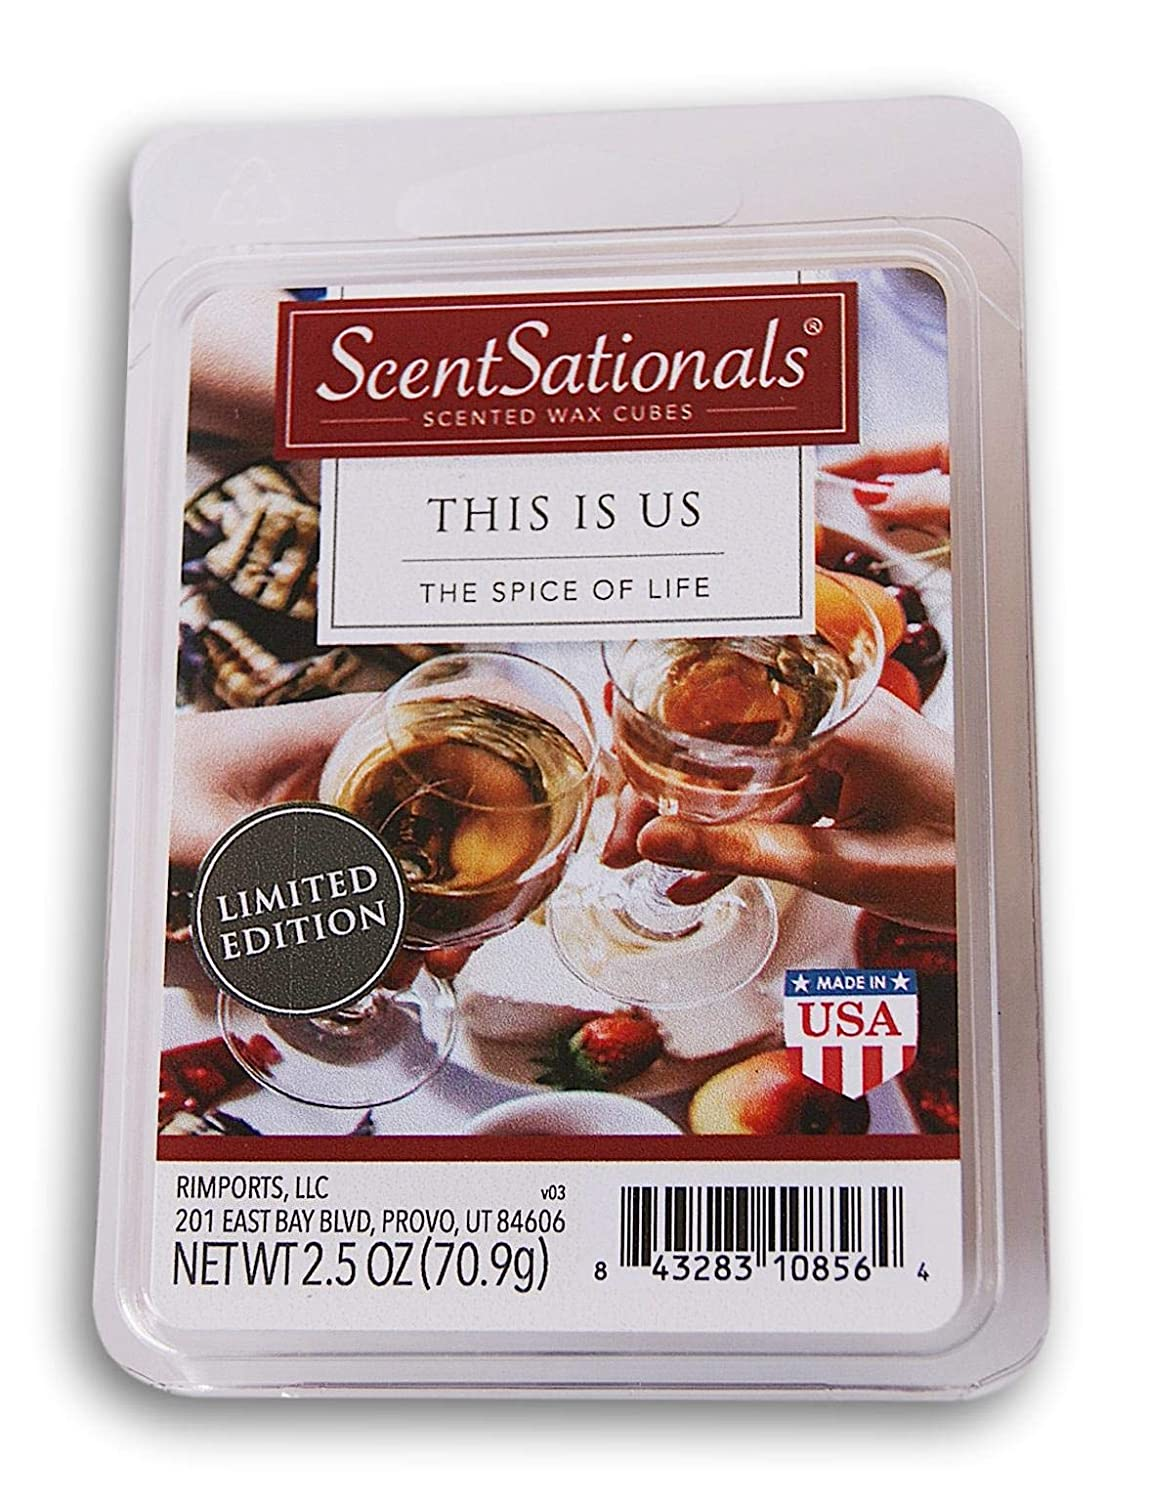 ScentSationals This is Us Wax Cubes 2019 Limited Edition